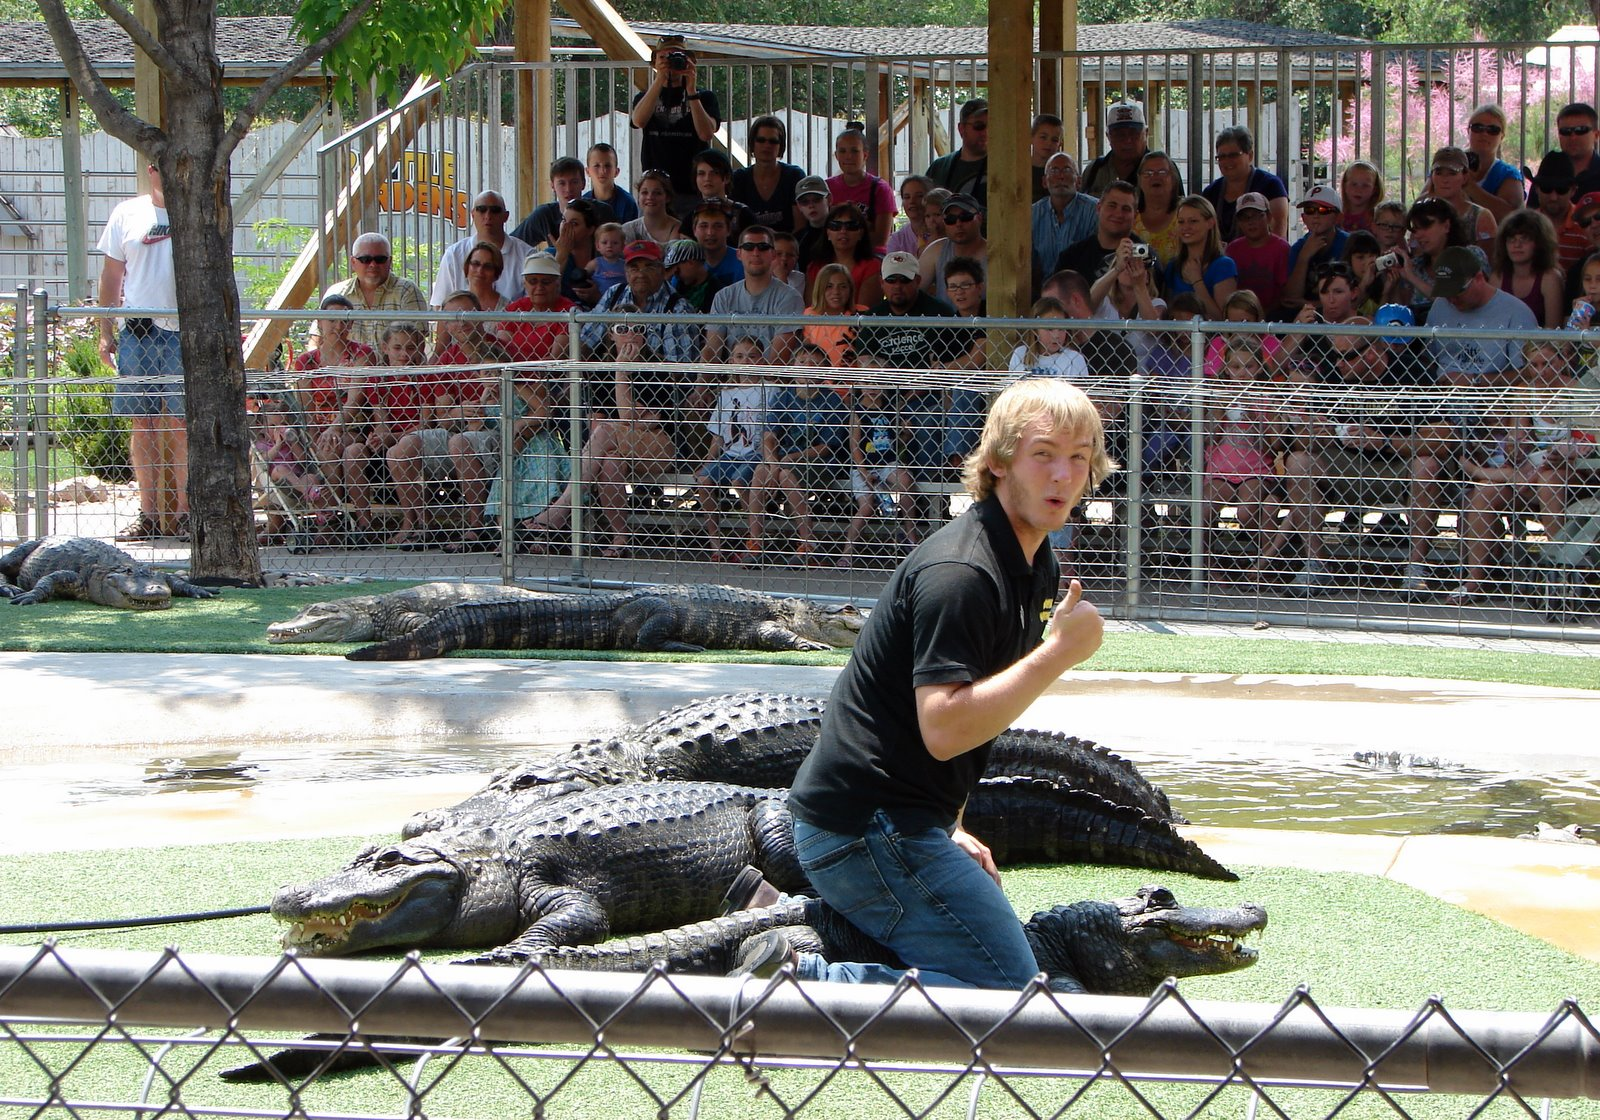 Rving And Travels Adventures With Suzanne And Brad Reptile Gardens Rapid City South Dakota